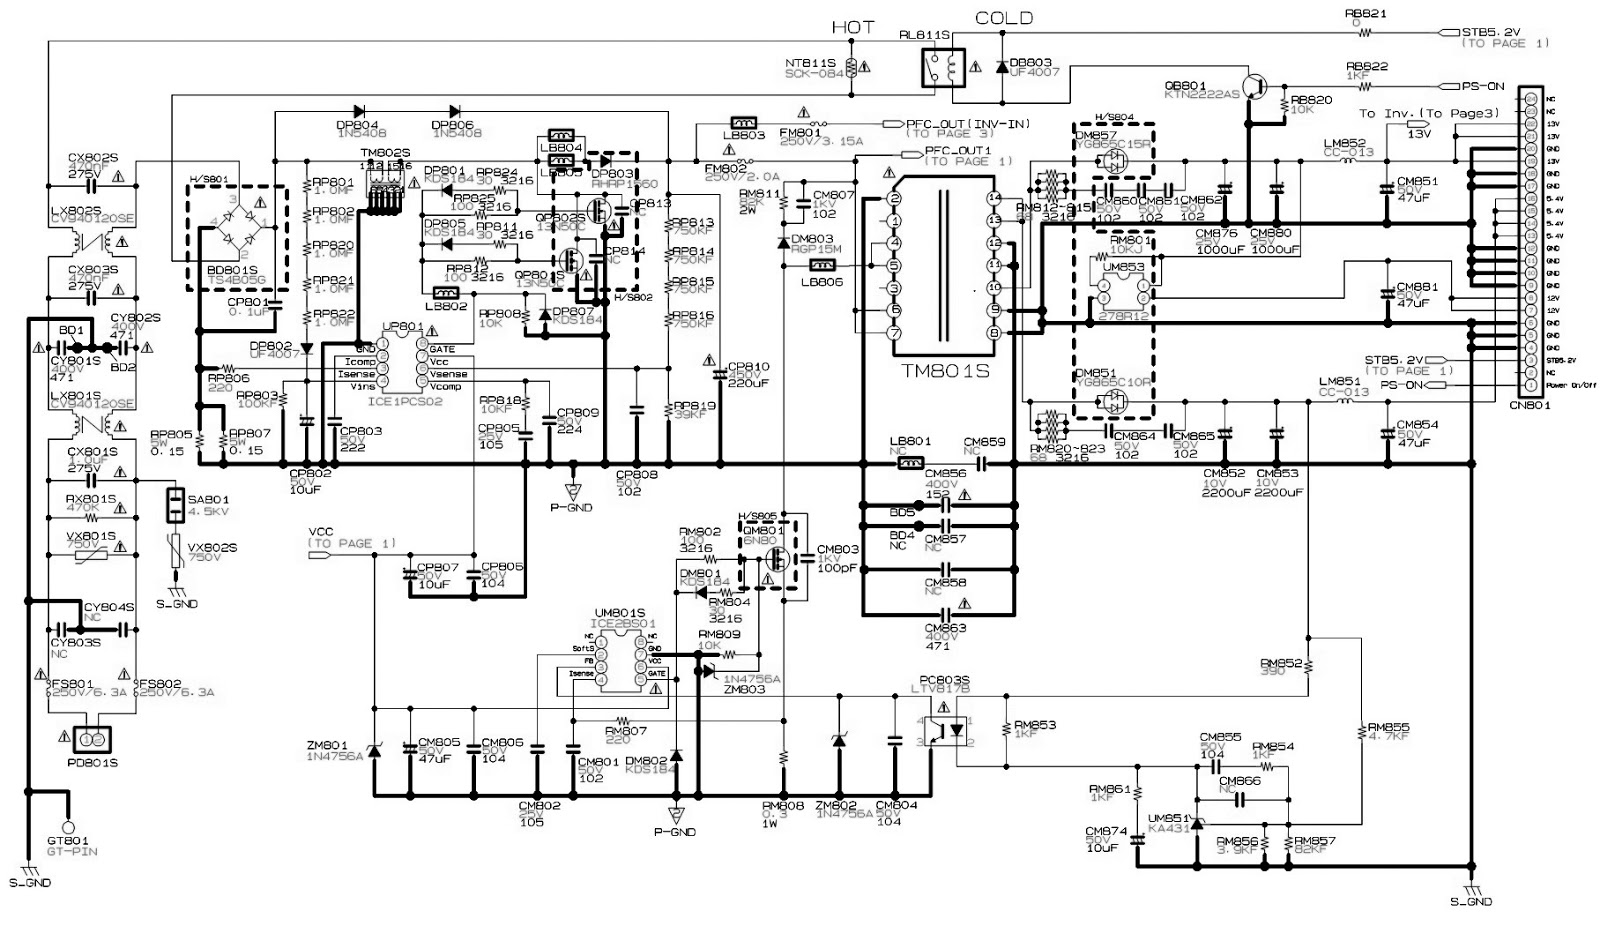 bn44 00165a samsung led lcd tv circuit diagram rh circuit diagramz com lcd tv power supply circuit diagram samsung lcd tv circuit diagram